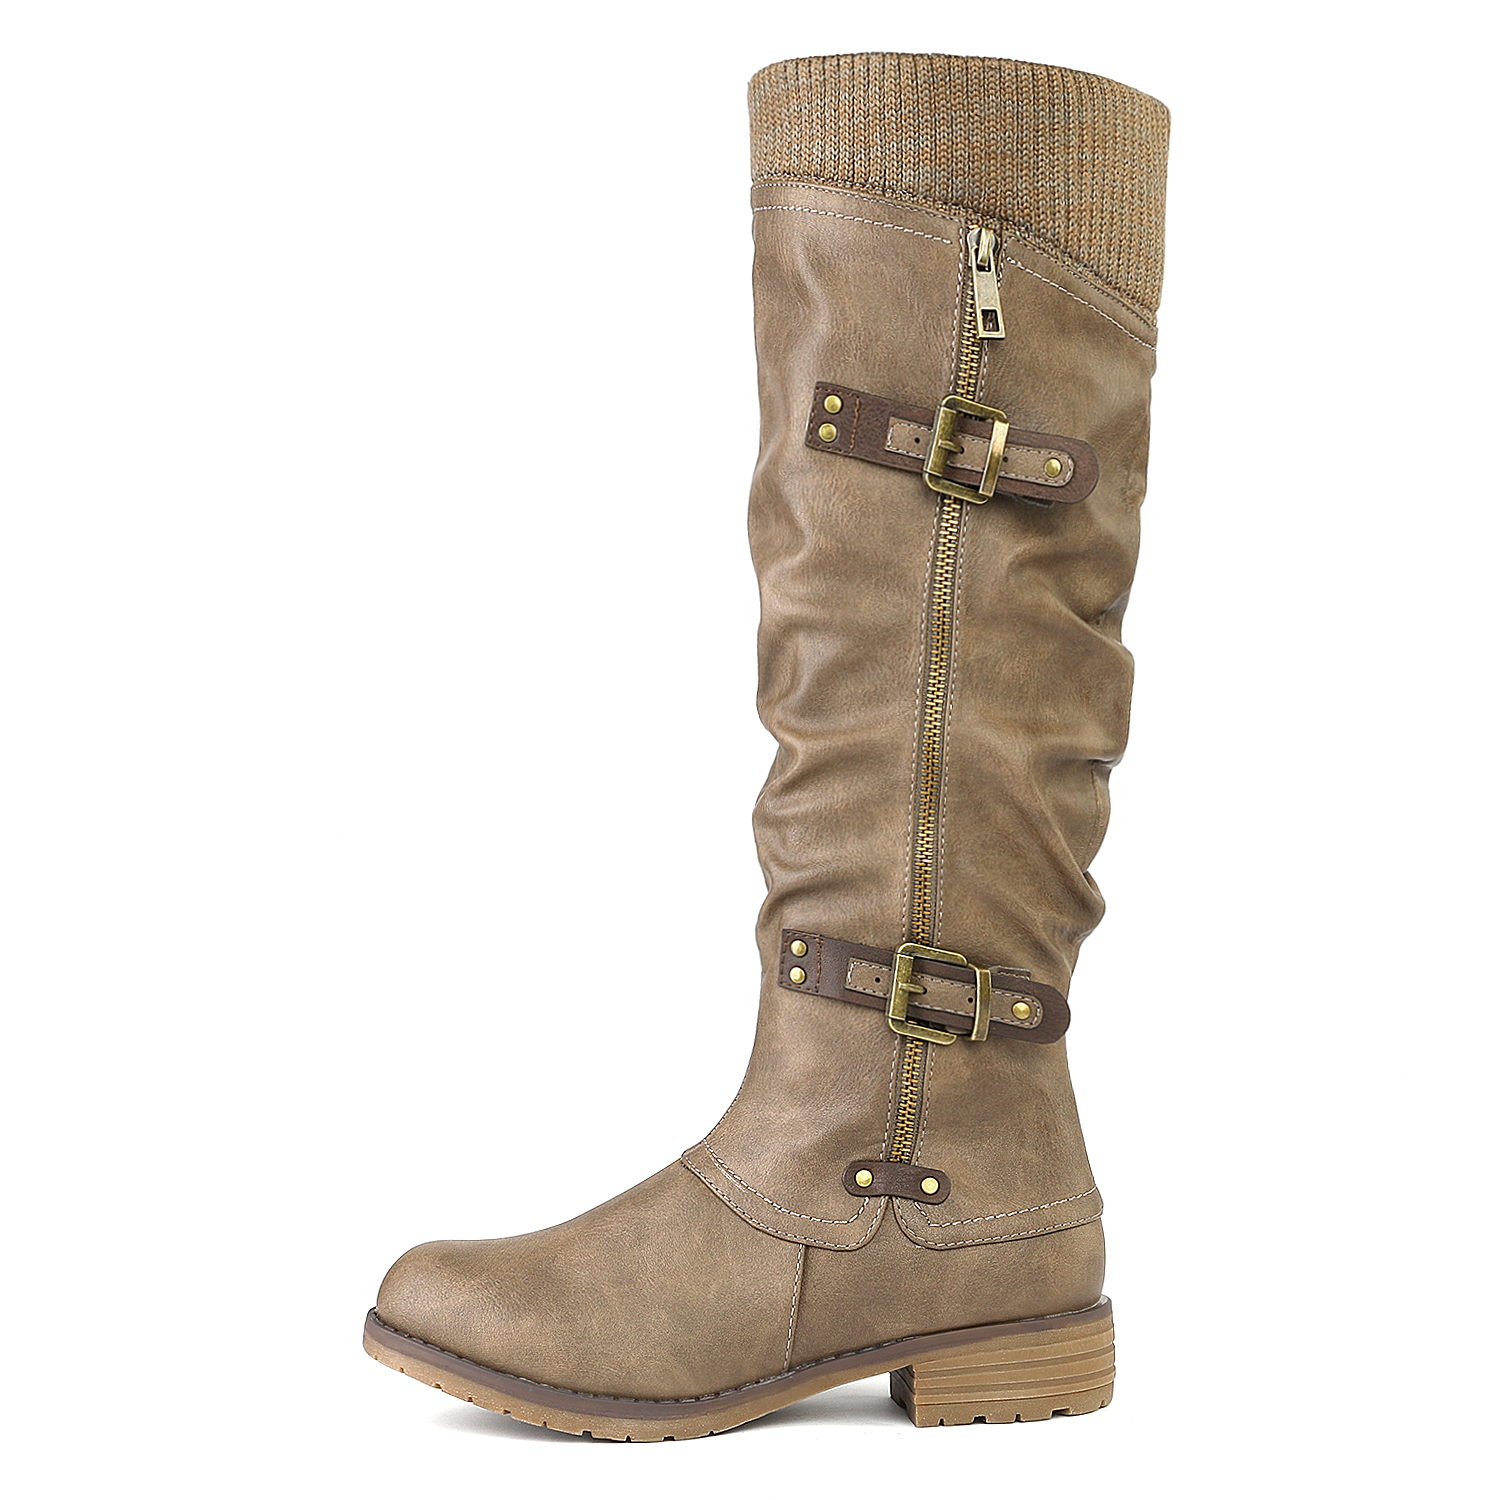 DREAM-PAIRS-Womens-DEPP-Cowgirl-Soft-PU-Leather-Combat-Knee-High-Riding-Boots thumbnail 27